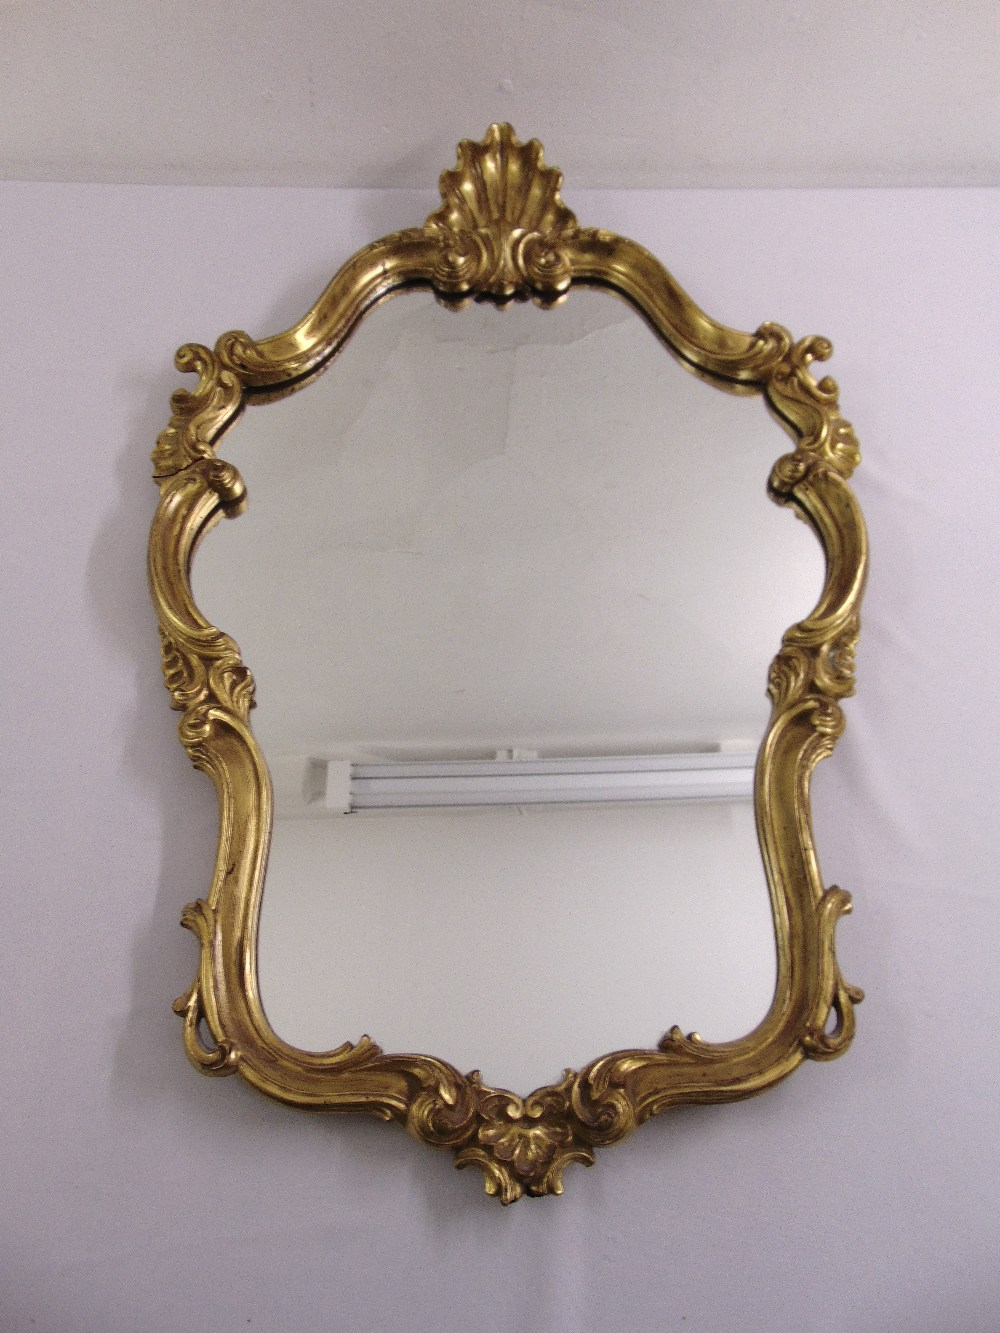 Lot 40 - A shaped oval gilded wooden Rococo style wall mirror